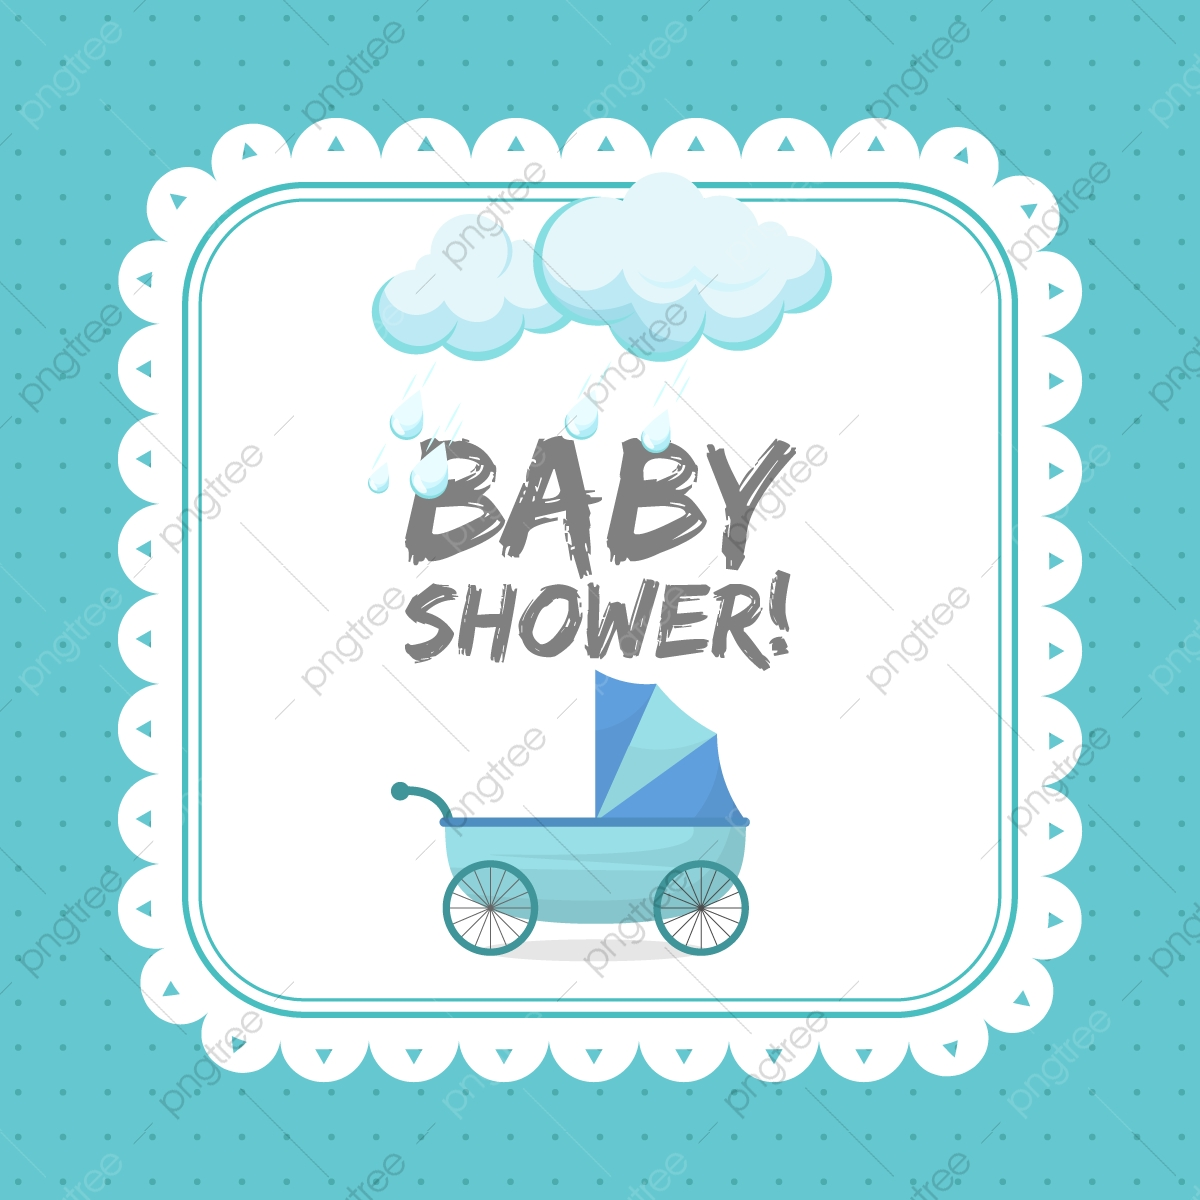 Baby Shower Invitation Card Template Baby Shower Elephant Png And Vector With Transparent Background For Free Download